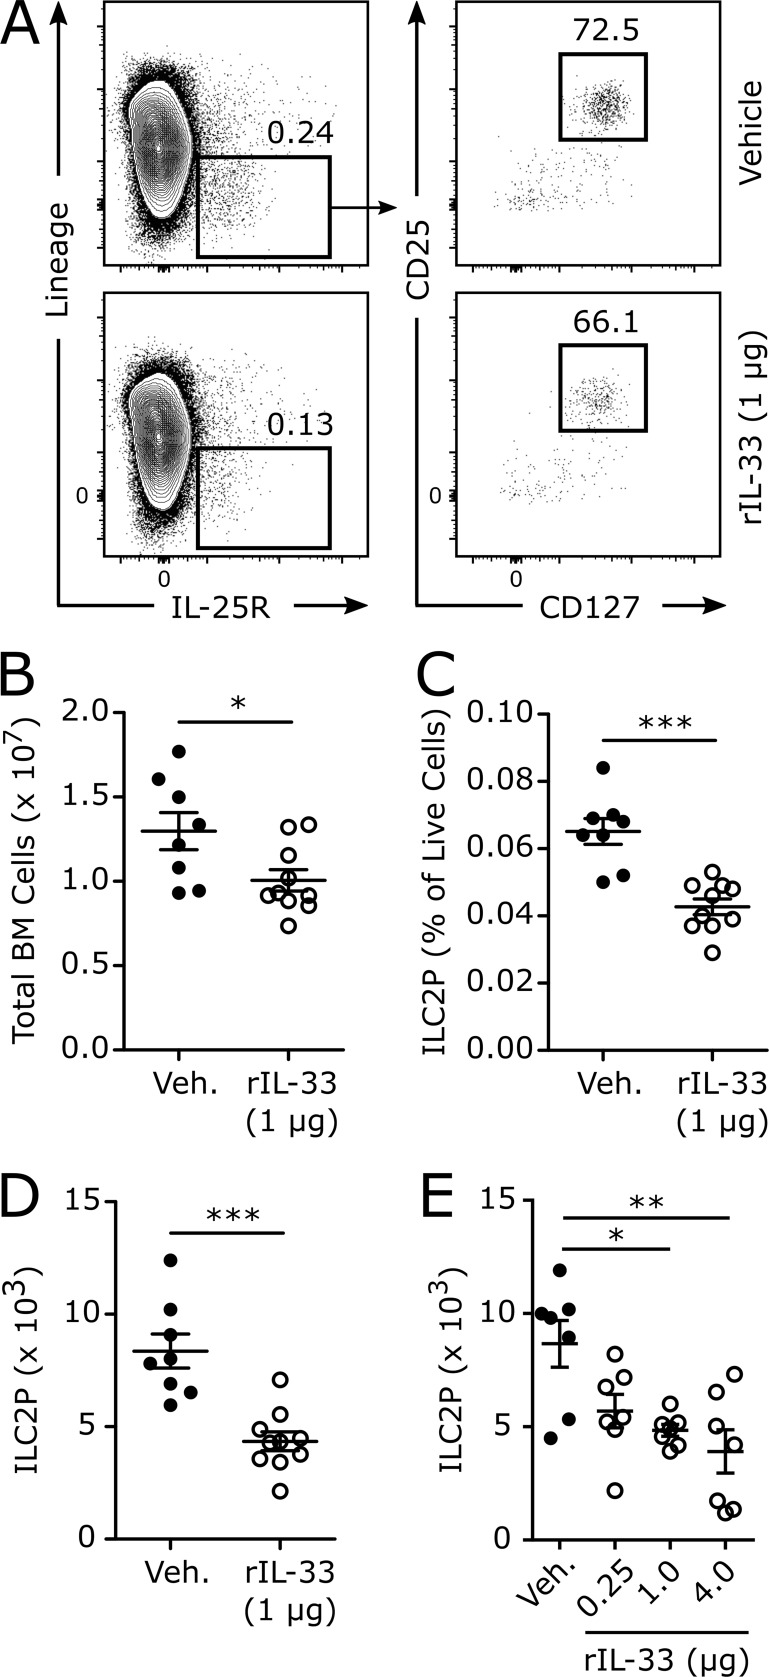 Direct intravenous administration of IL-33 decreases ILC2P frequency in the bone marrow. Adult naive WT mice were treated intravenously with rIL-33 or vehicle (0.1% BSA in PBS), and bone marrow was harvested 24 h later for flow cytometric analysis. (A) Representative gating for bone marrow ILC2Ps from mice treated with vehicle or 1 µg rIL-33. (B) The total number of viable bone marrow cells. (C) ILC2P frequency among live bone marrow cells. (D) The total number of ILC2Ps in the bone marrow. (E) The total number of ILC2Ps in the bone marrow of mice treated with vehicle or 0.25, 1, or 4 µg rIL-33 for 24 h. Data are combined from two independent experiments (B–D, n = 8–10; E, n = 7) or representative of two independent experiments (A) and are displayed as the mean ± SEM. *, P